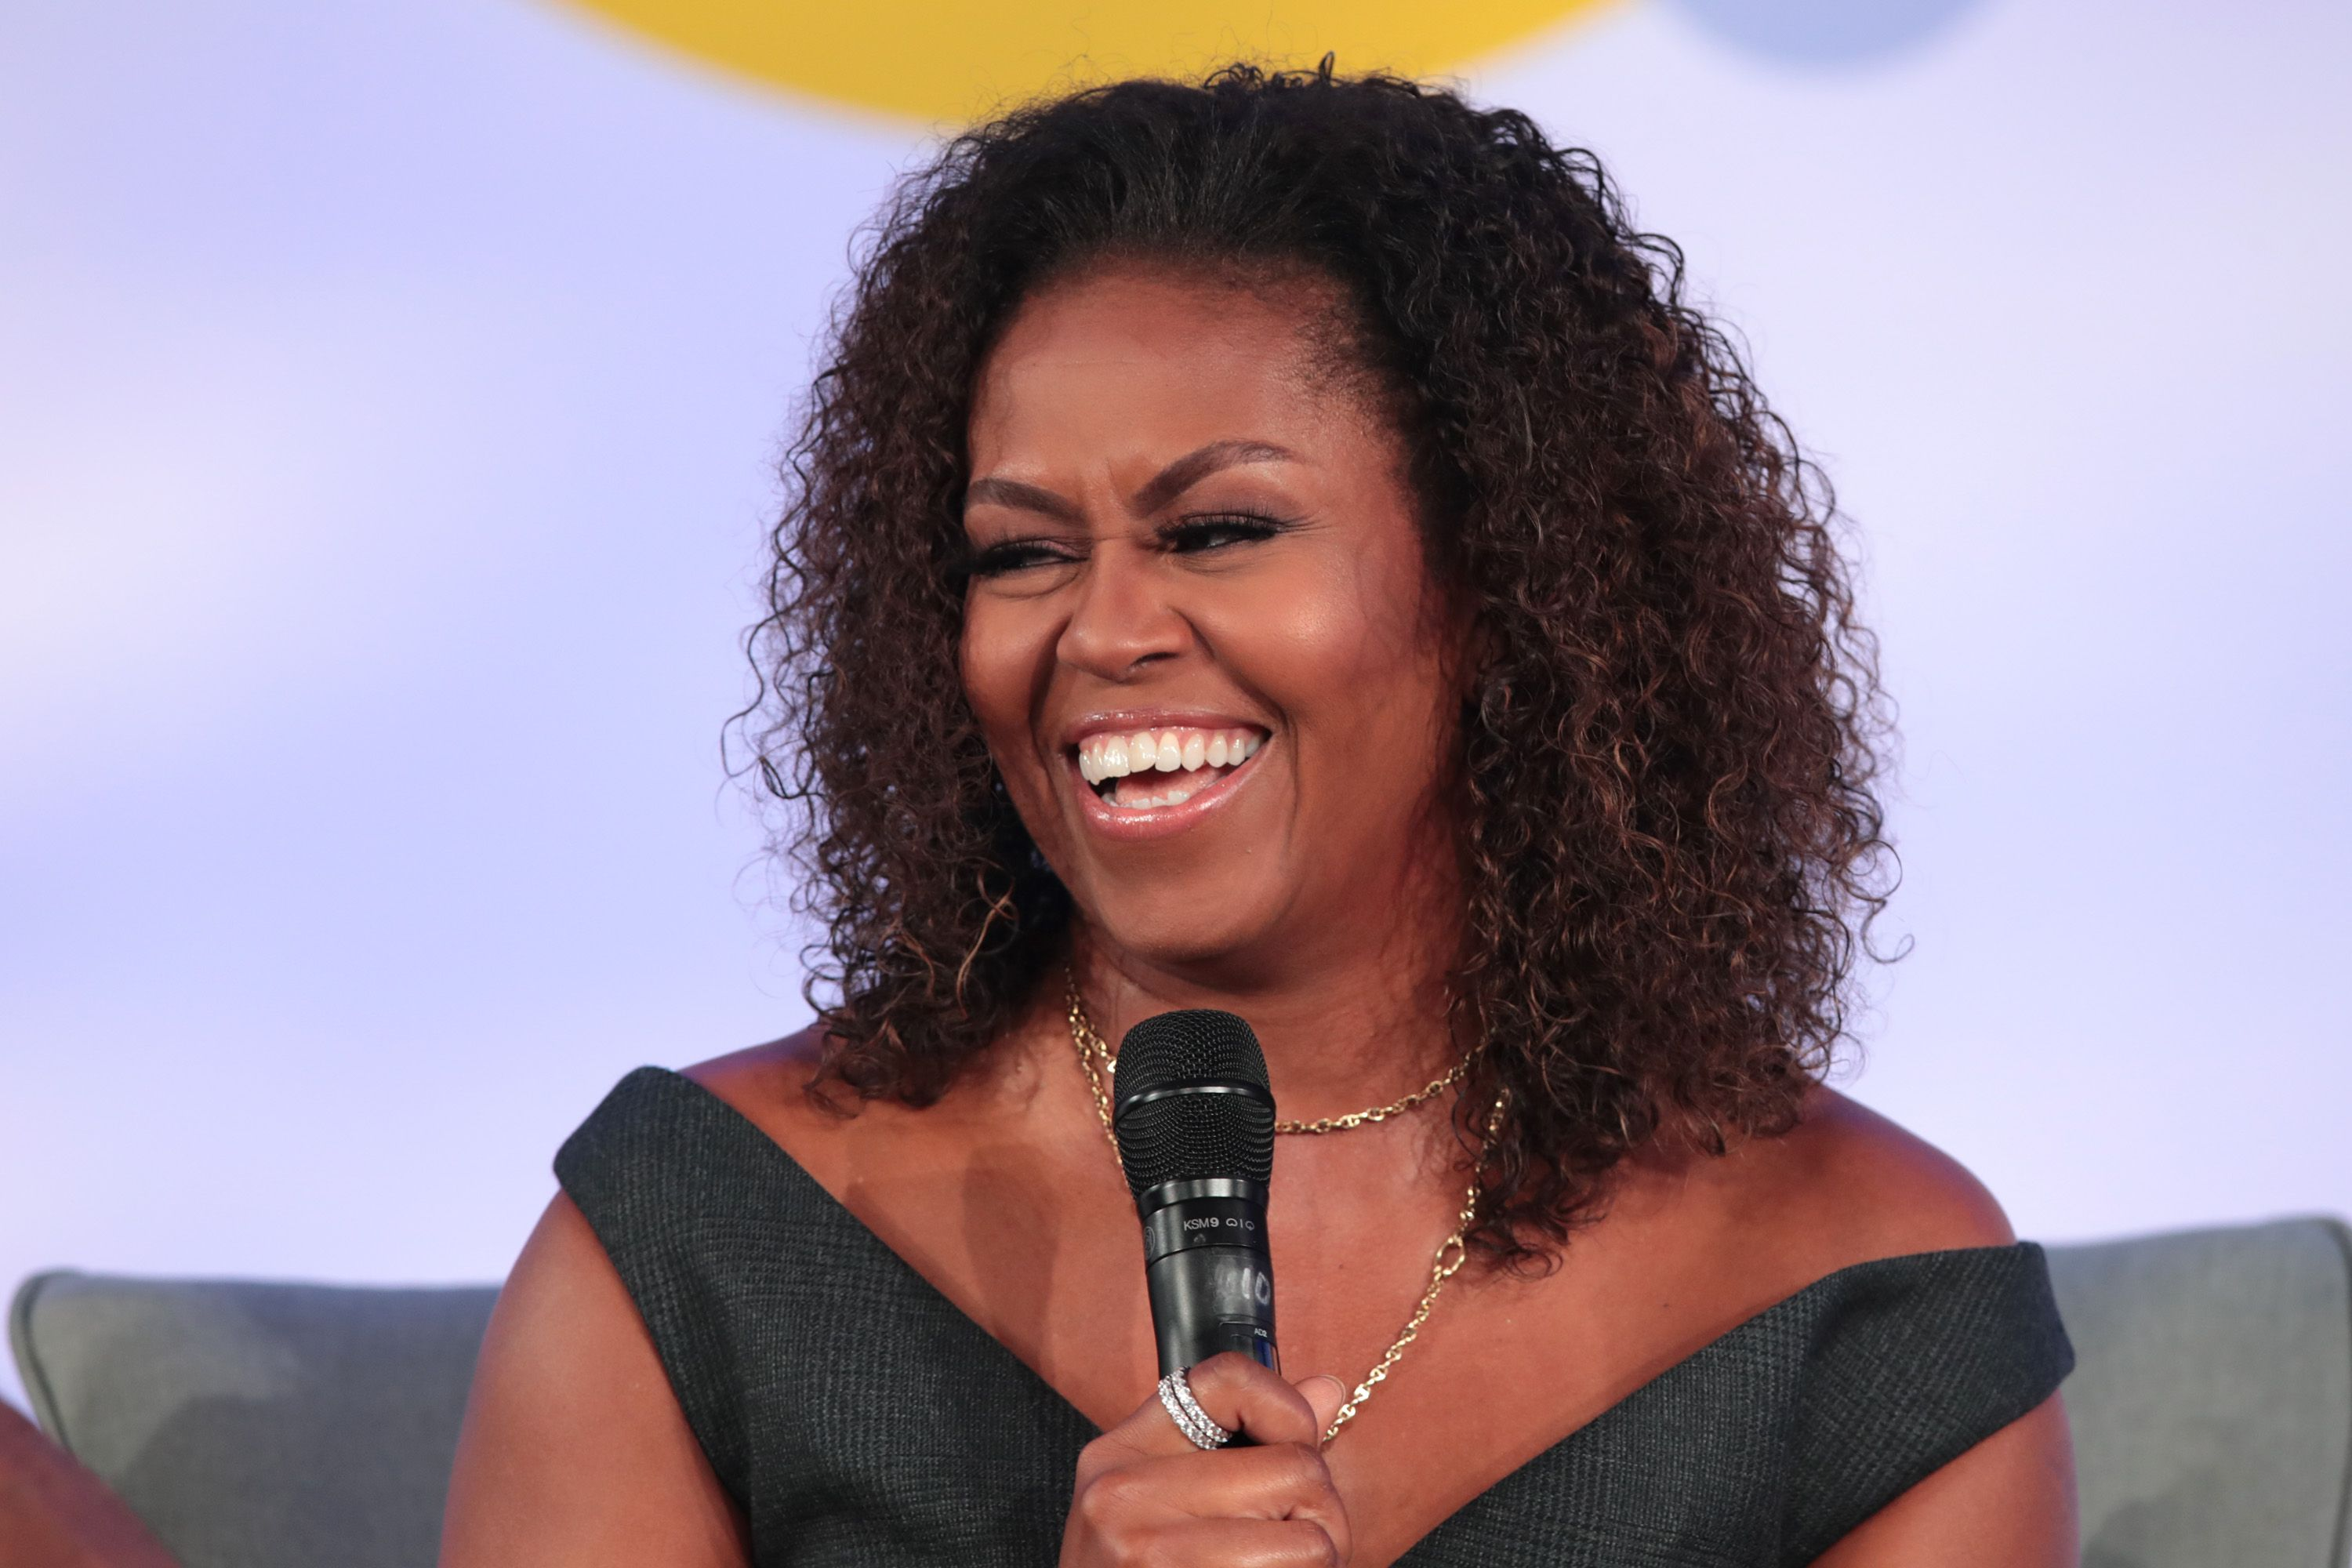 Michelle Obama at the Obama Foundation Summit at Illinois Institute of Technology on October 29, 2019   Getty Images